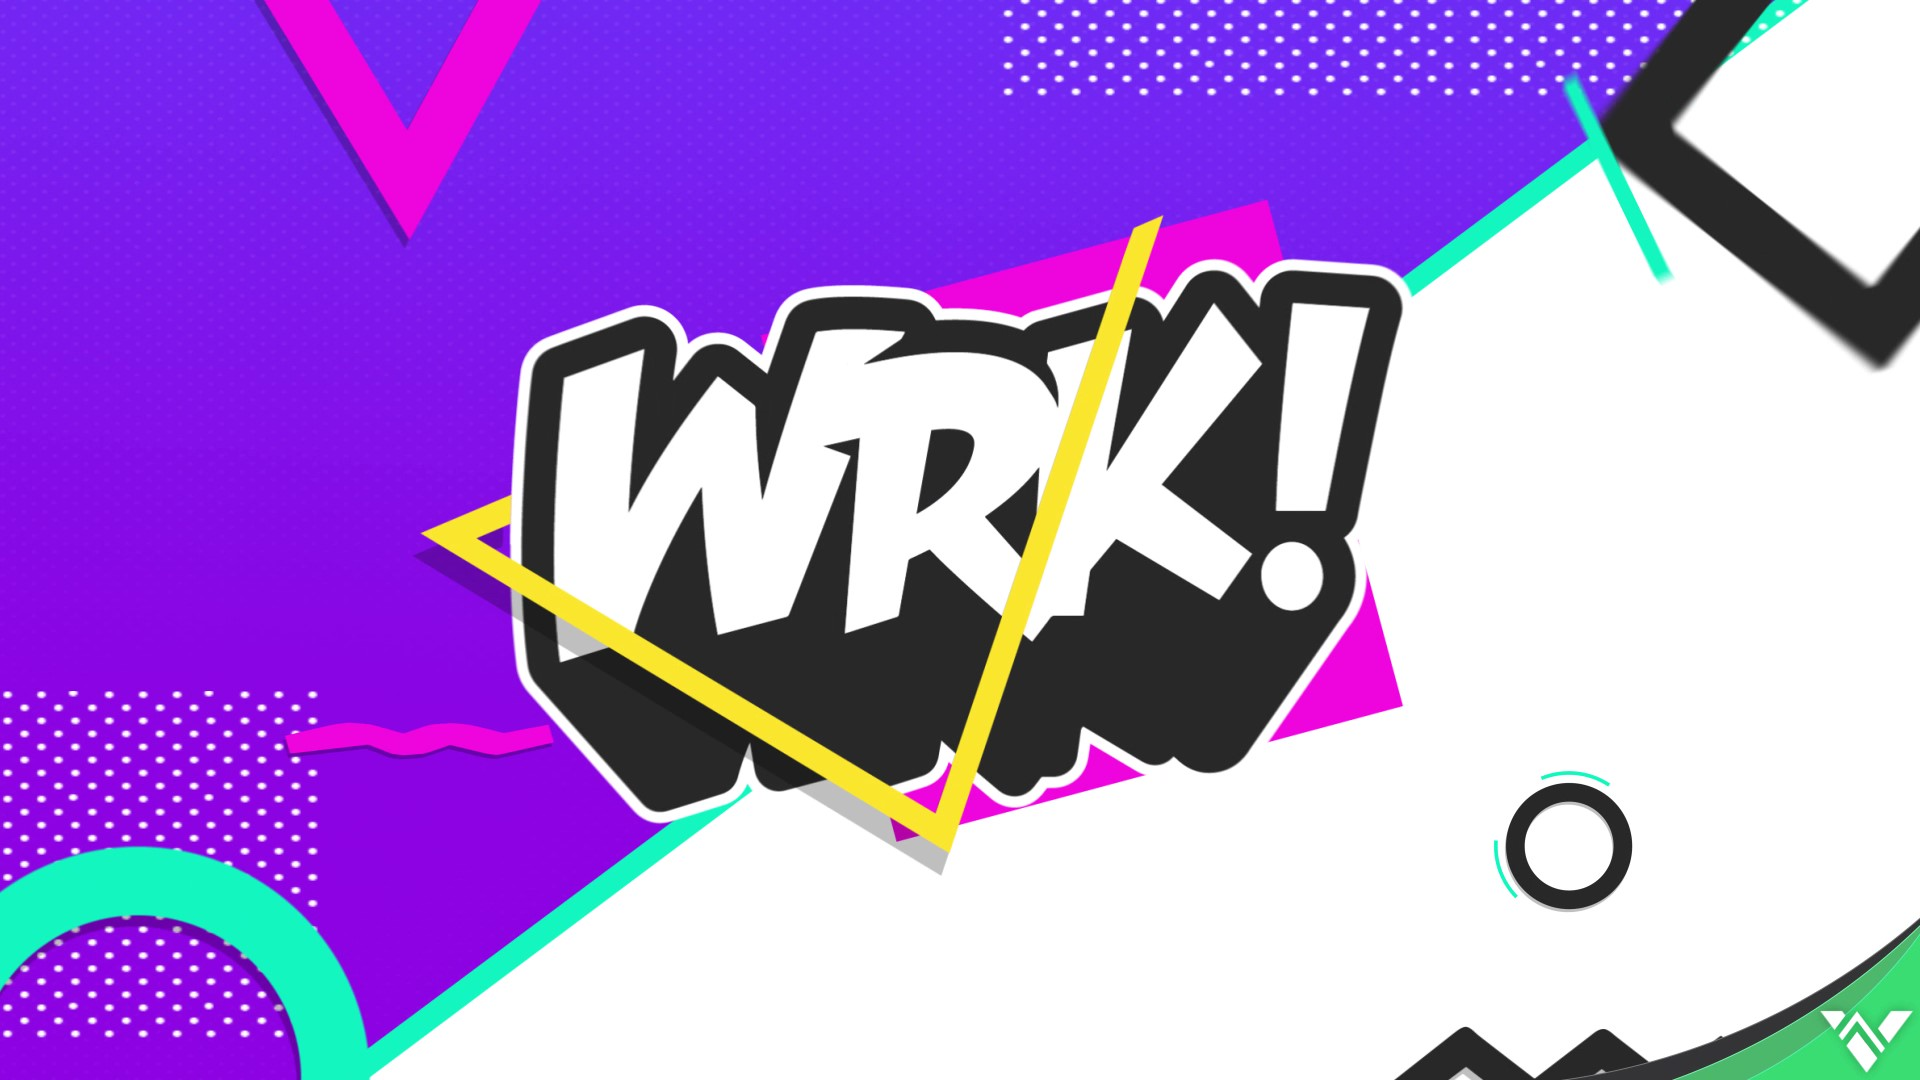 WRK Logo over Purple White Background and shapes